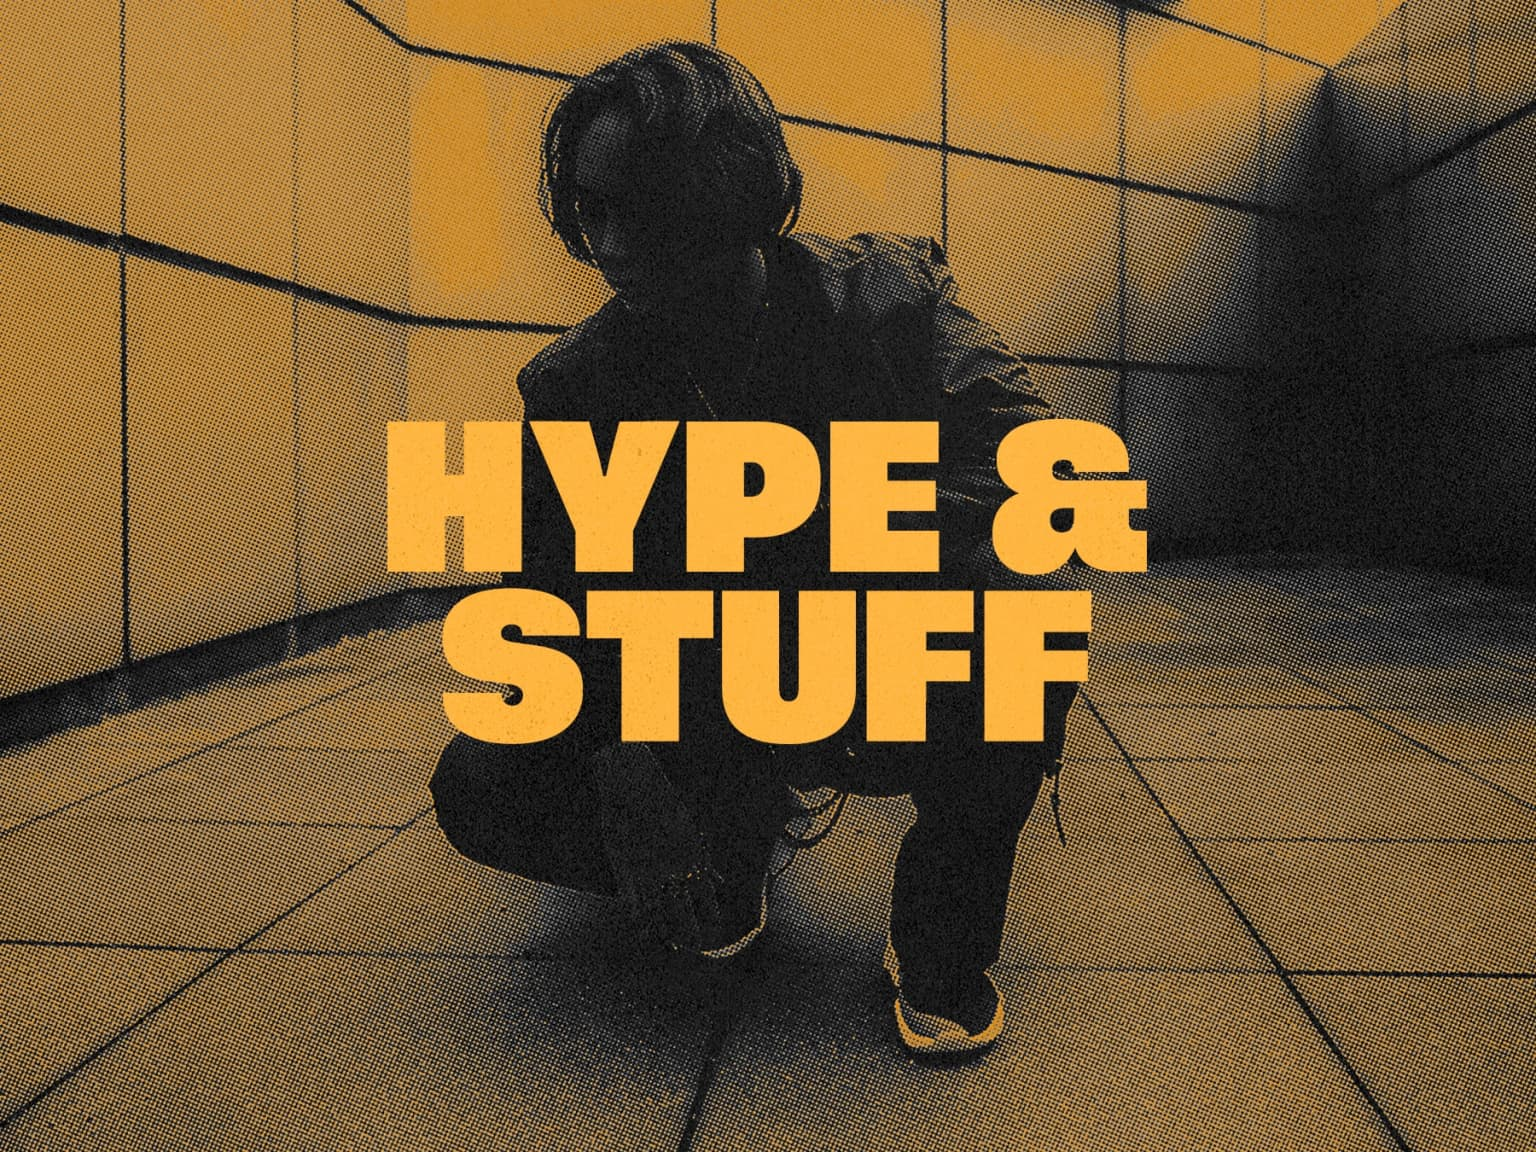 Hype & Stuff: Your go-to source for culture.